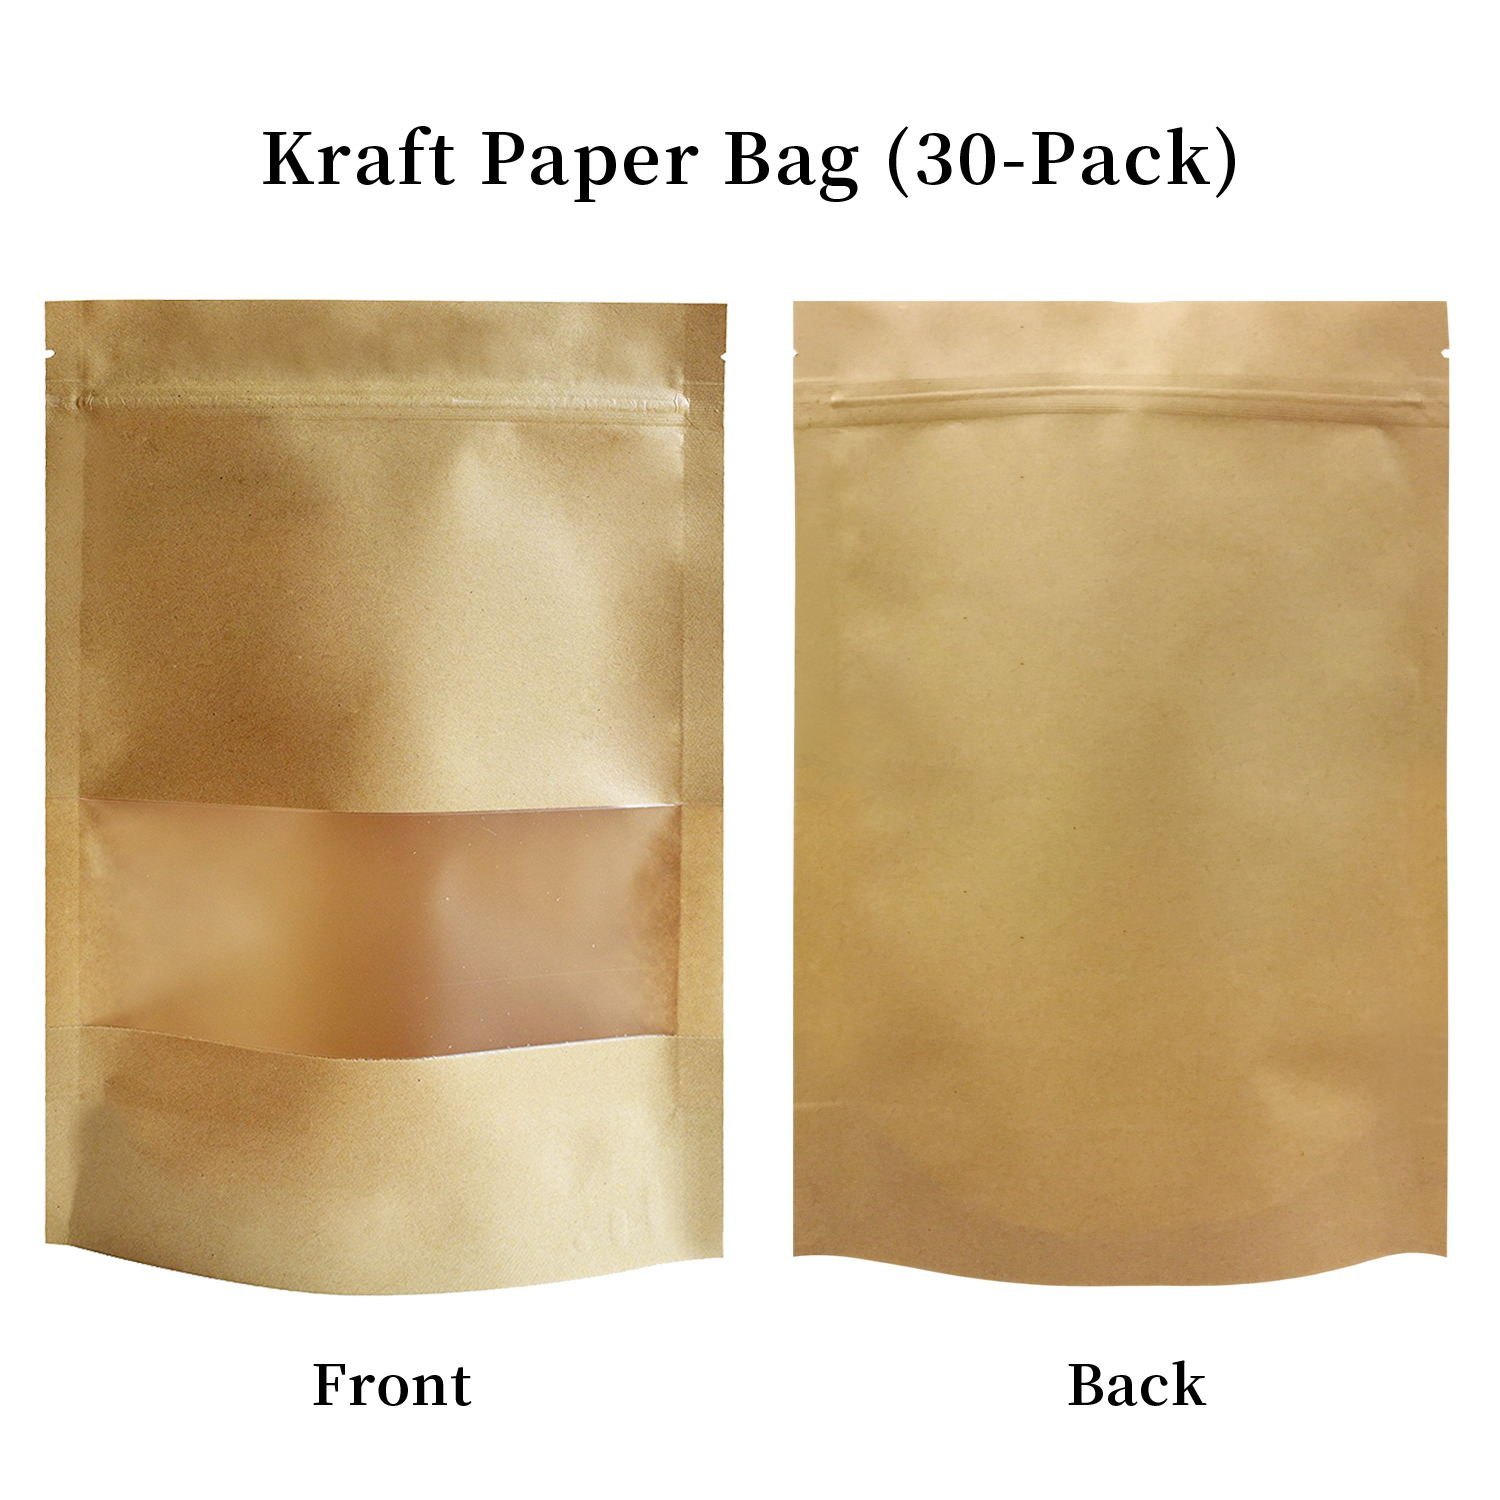 51groups Kraft Paper Bag with Transparent Window (30-Pack) Dry Food Snack Storage | Home , DIY, Commercial Use | Store Coffee , Tea Leaves , Nut, Candy | Food-Grade Safe 7'' X 10''